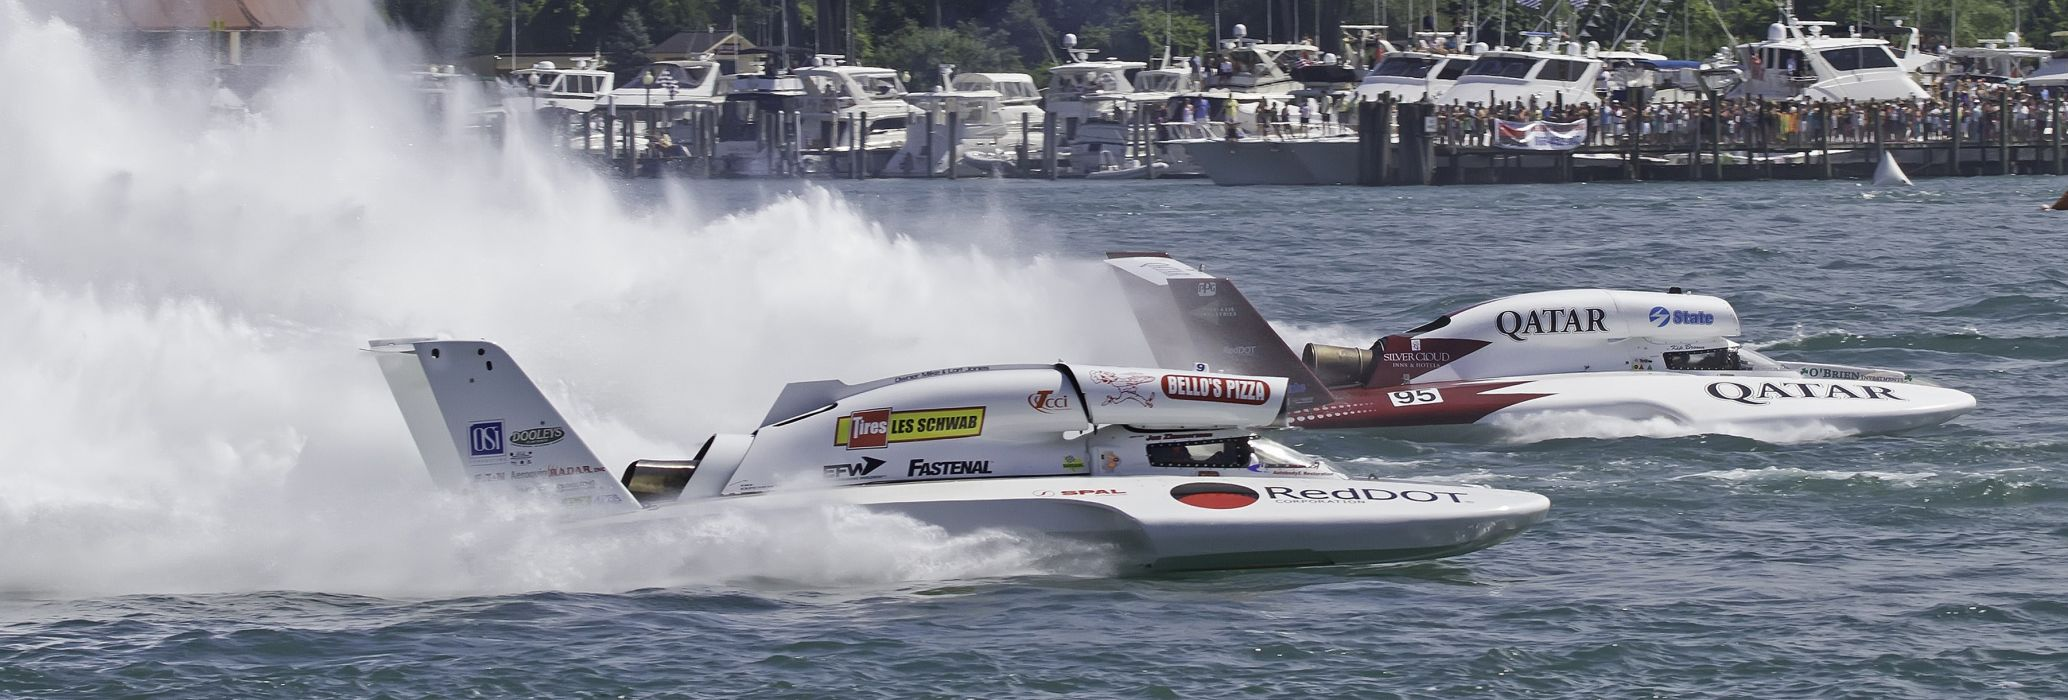 UNLIMITED-HYDROPLANE race racing jet hydroplane boat ship hot rod rod   hd wallpaper